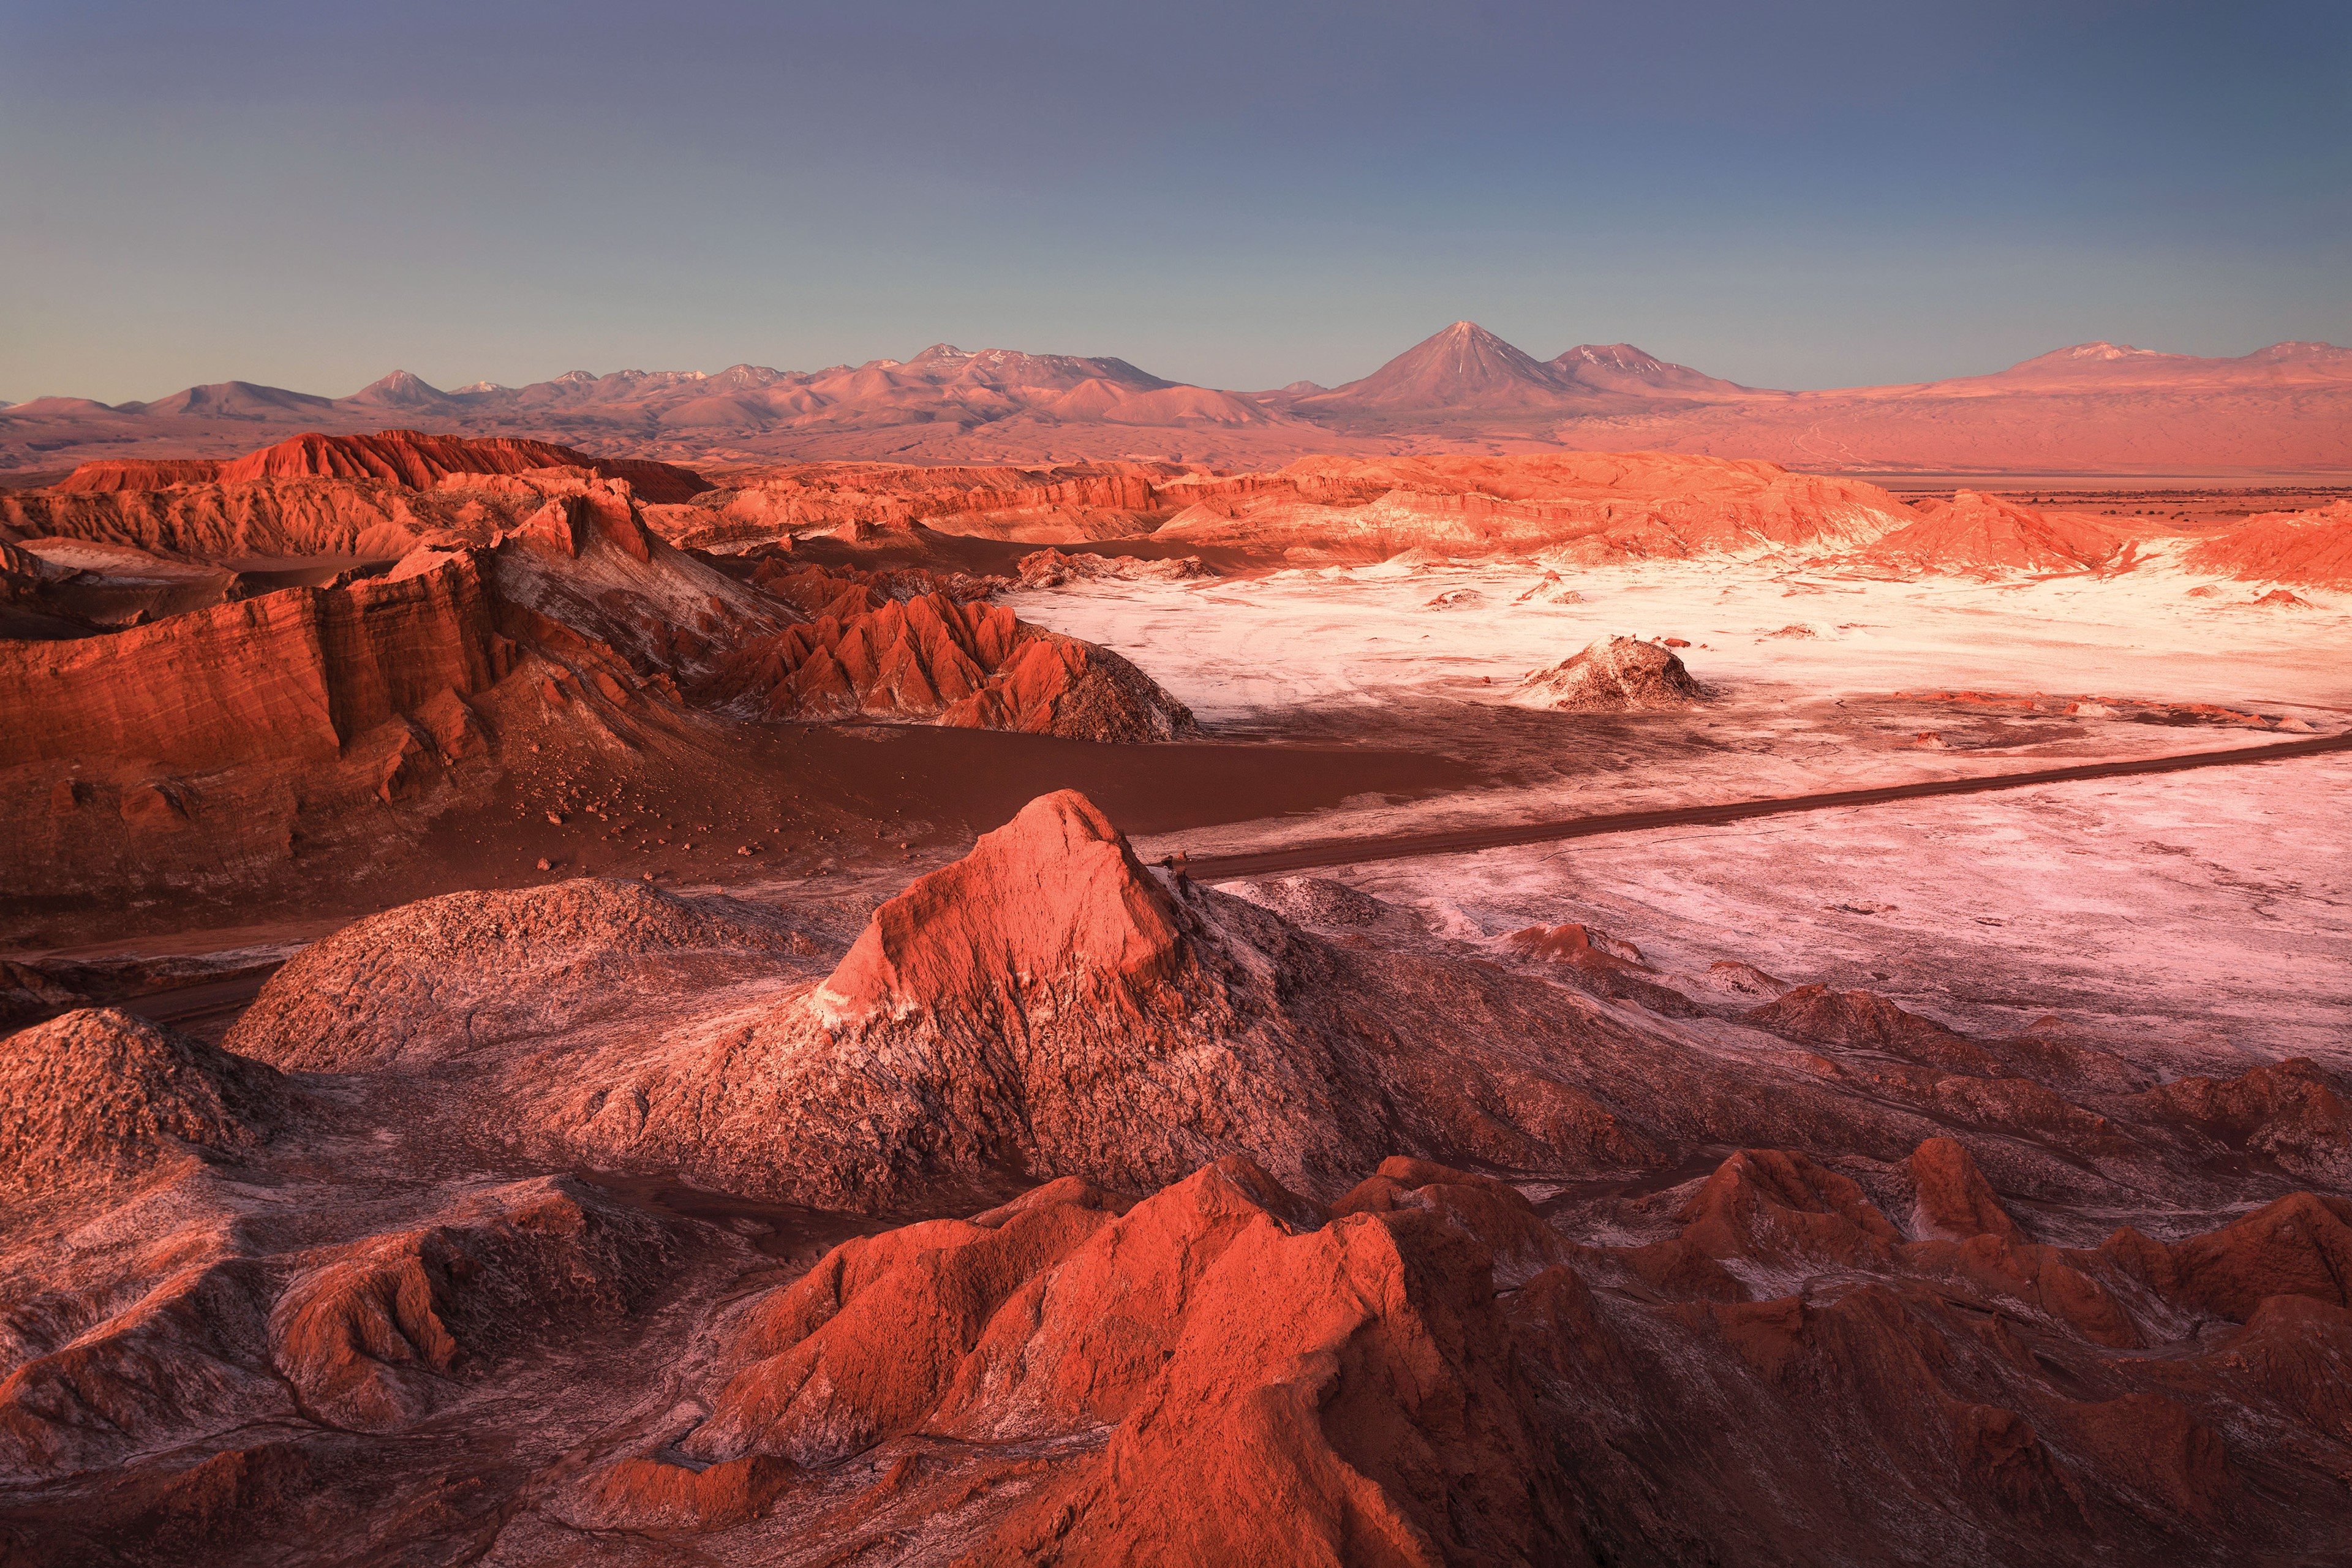 Moon Valley, Atacama Desert